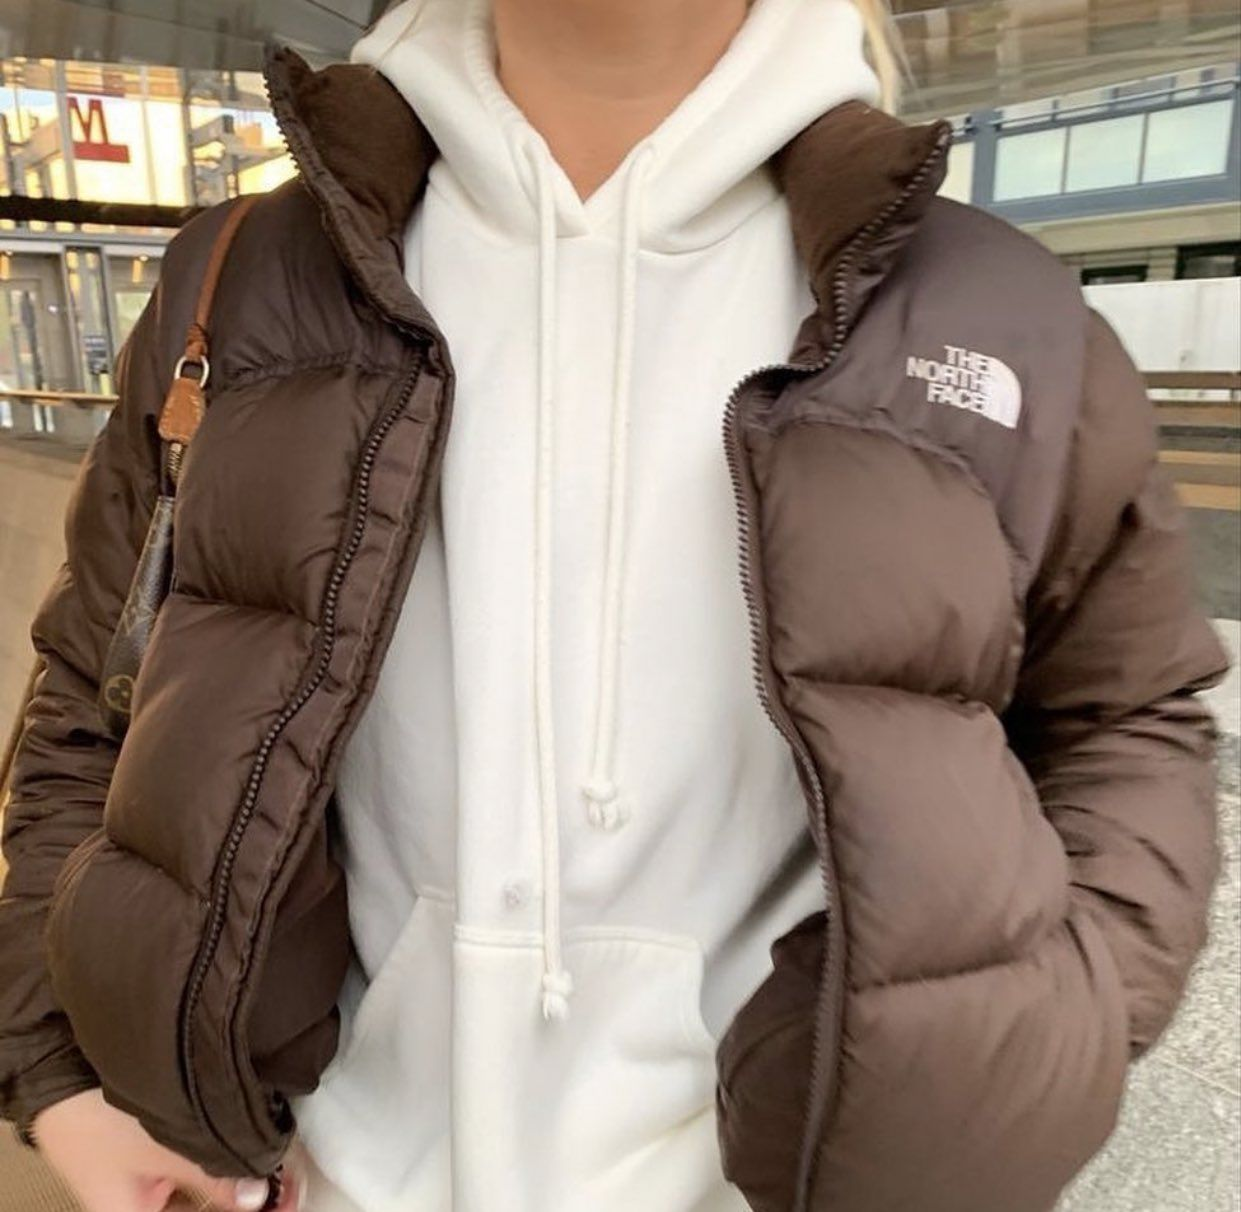 On Twitter North Face Puffer Jacket Brown Outfit Fashion Inspo Outfits [ 1212 x 1241 Pixel ]